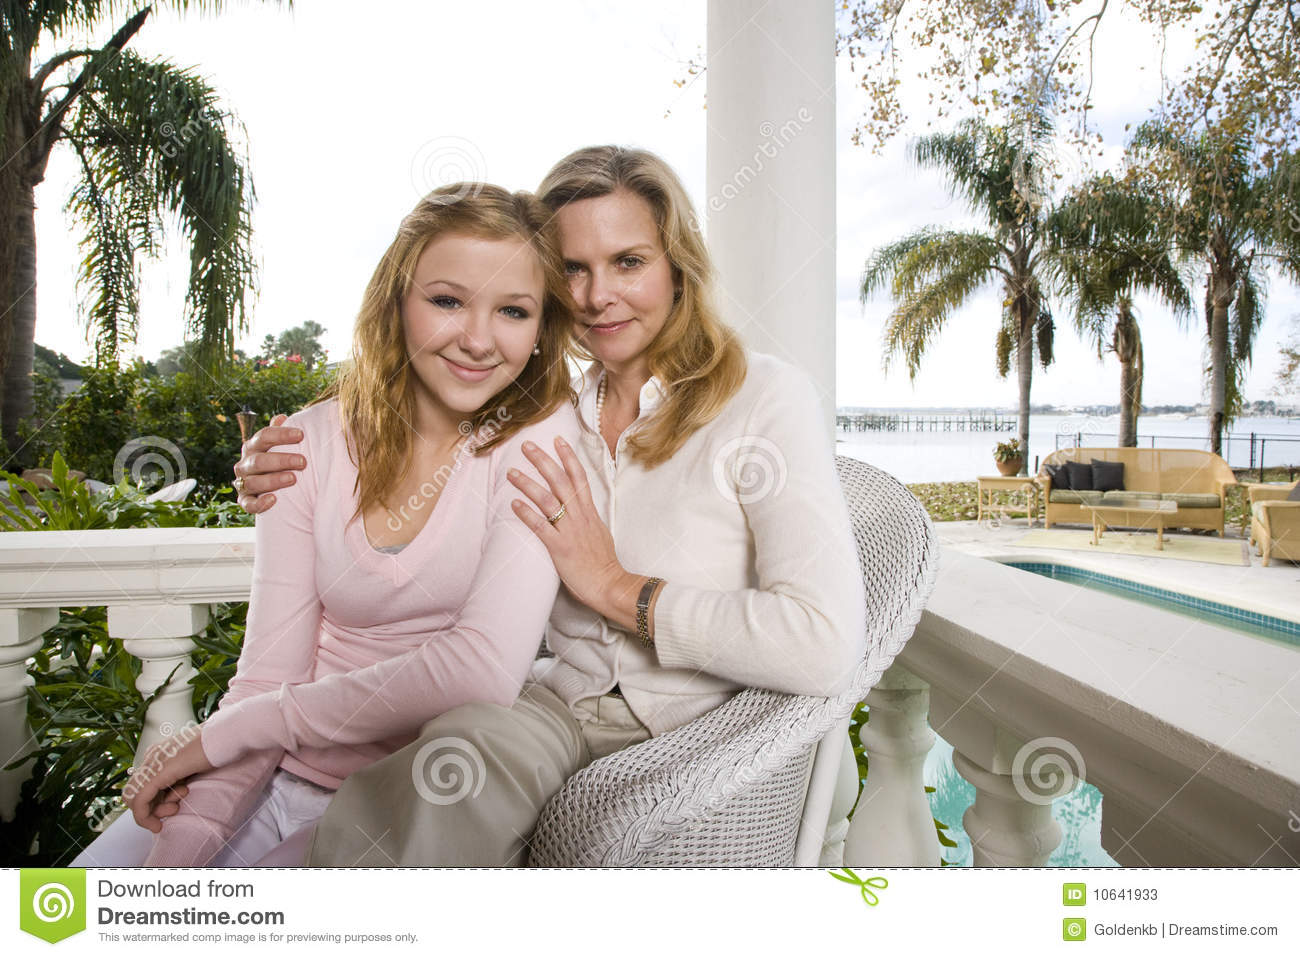 Clipart Of Mother And Daughter